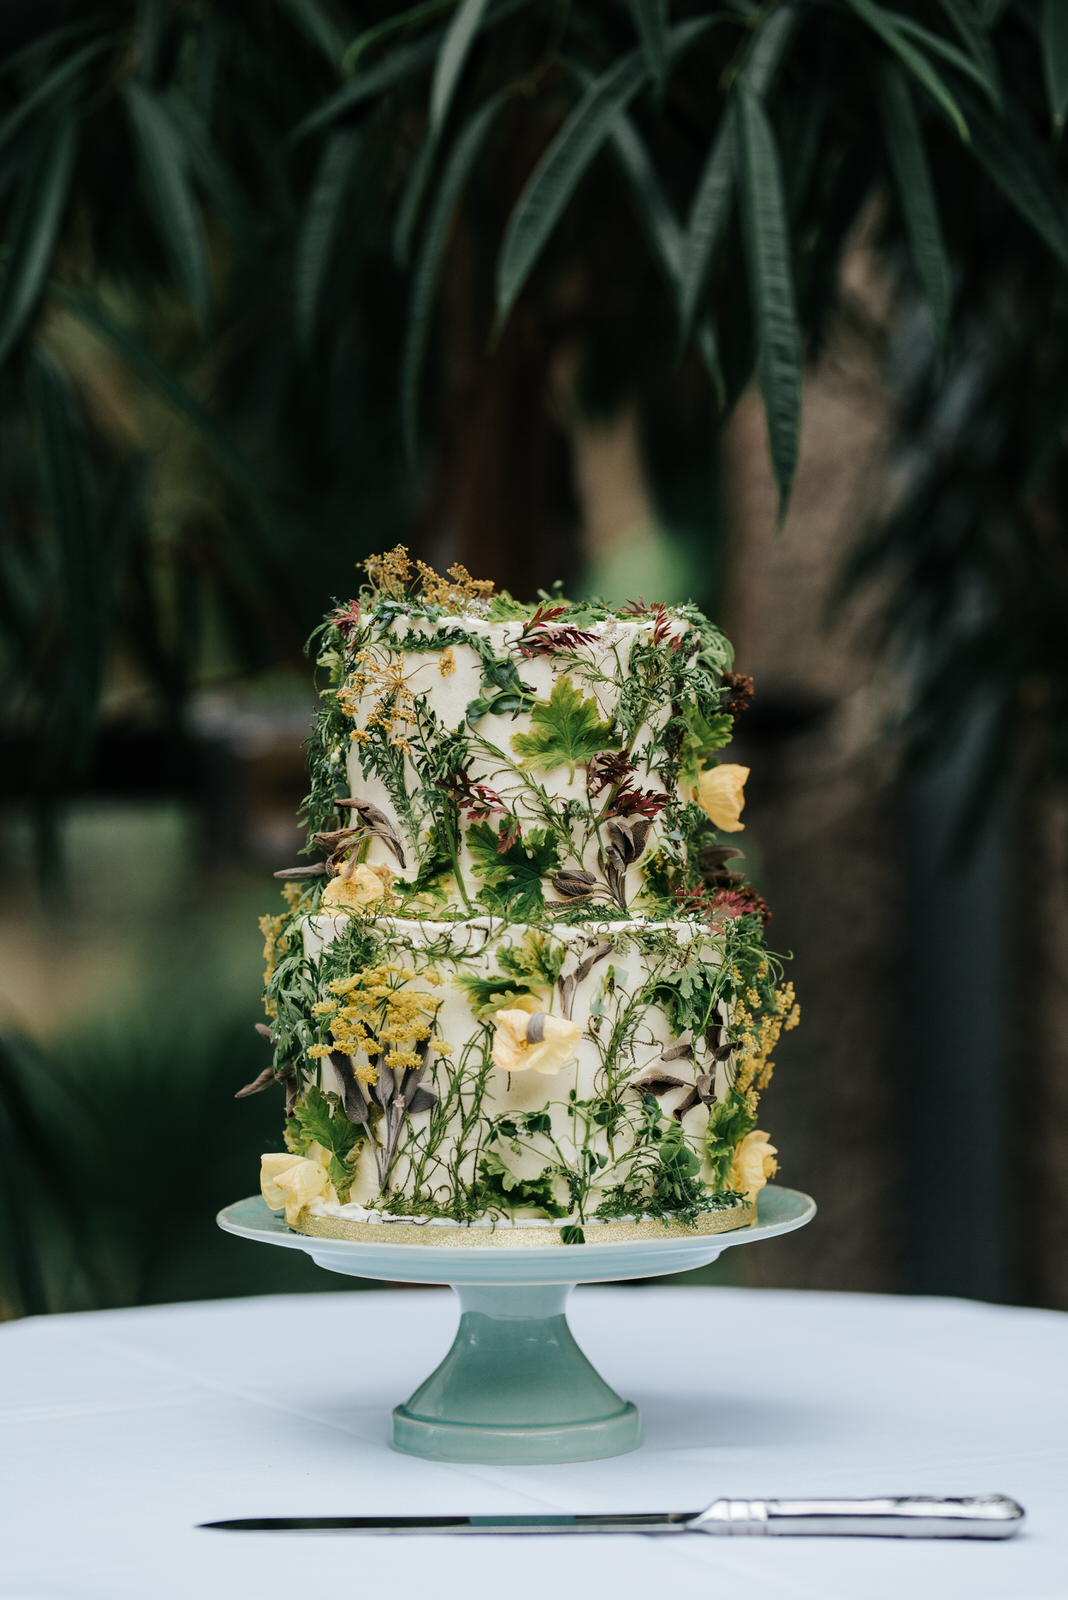 Detail photograph of stunning wedding cake decorated with shrubs